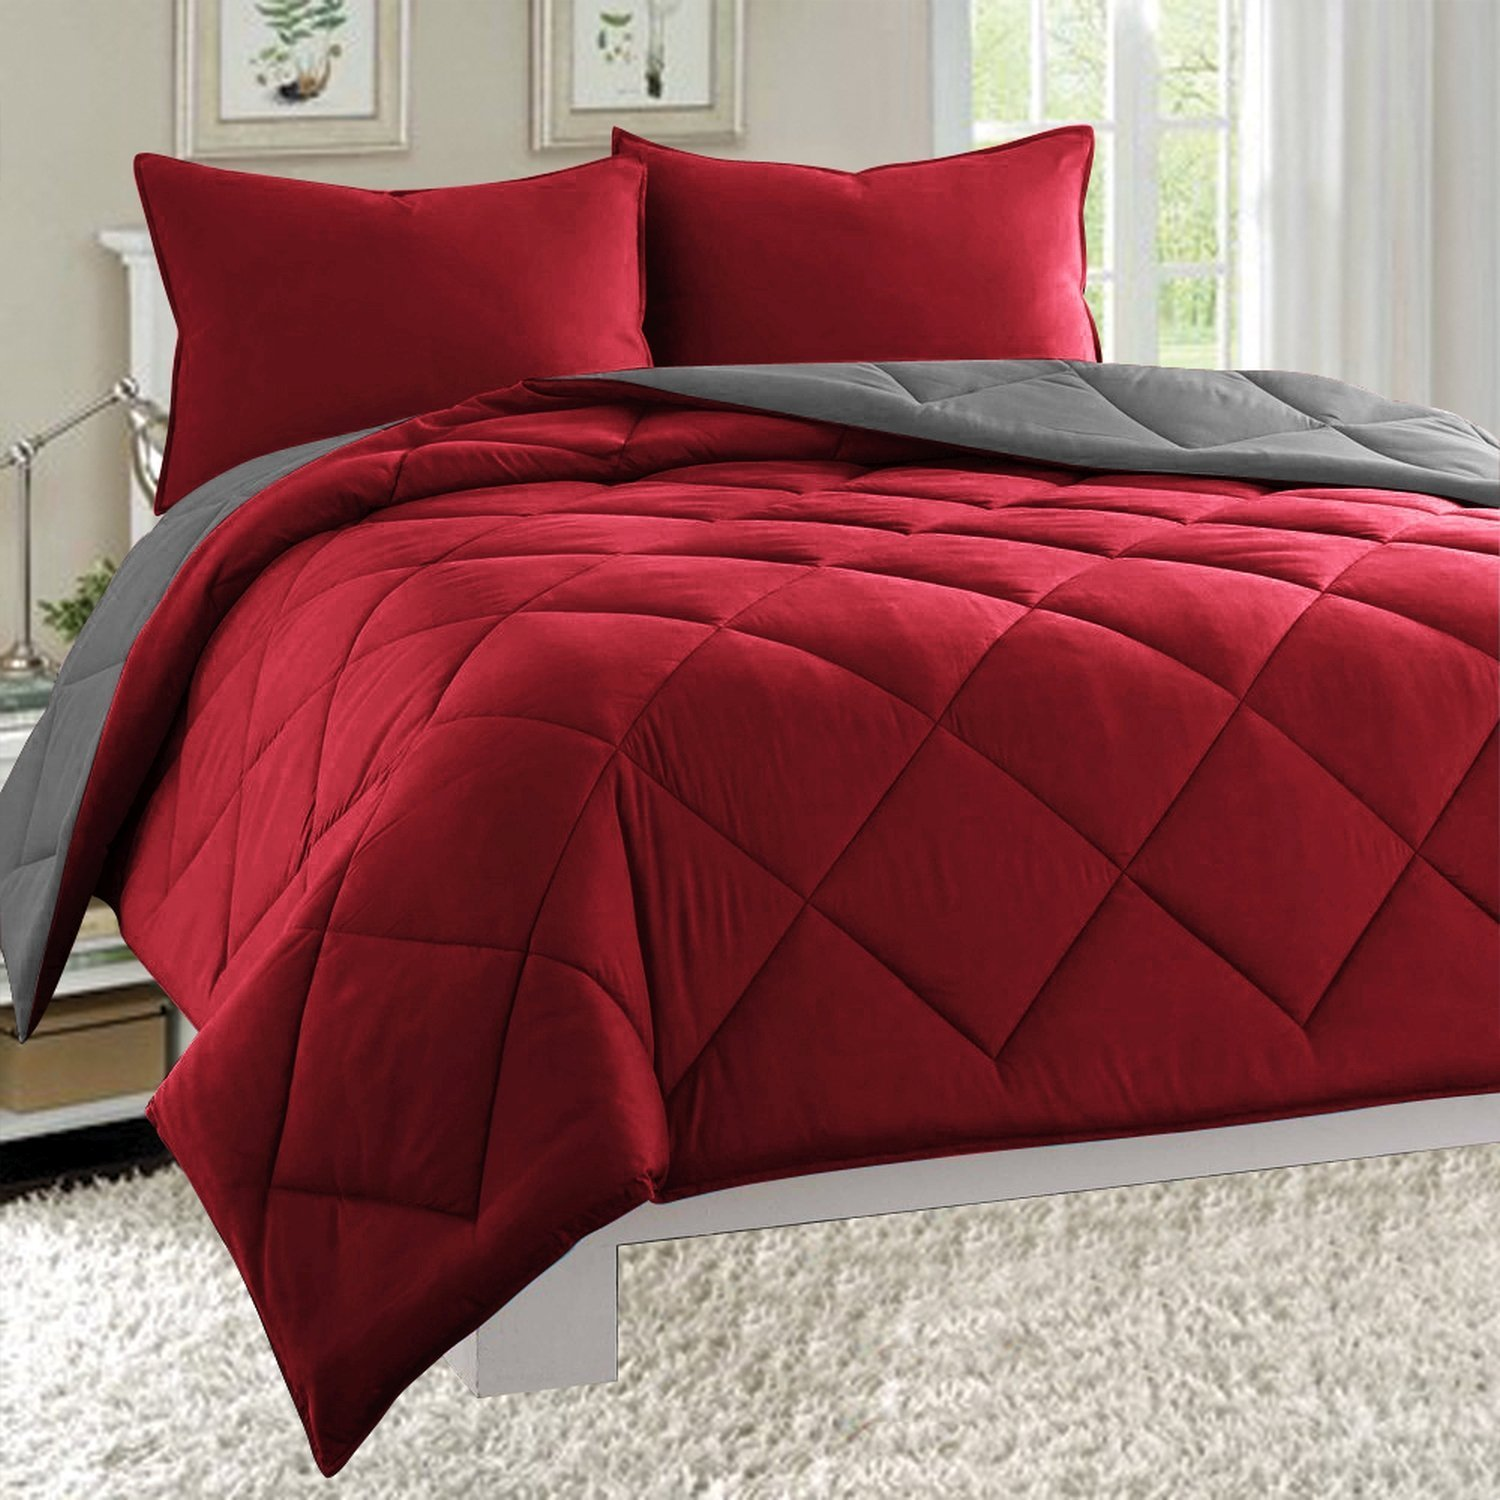 at together purple down bedding king bedspread grey pink bed traditional queen exciting arresting size california with target turquoise comforters xl walmart sets comforter twin mind